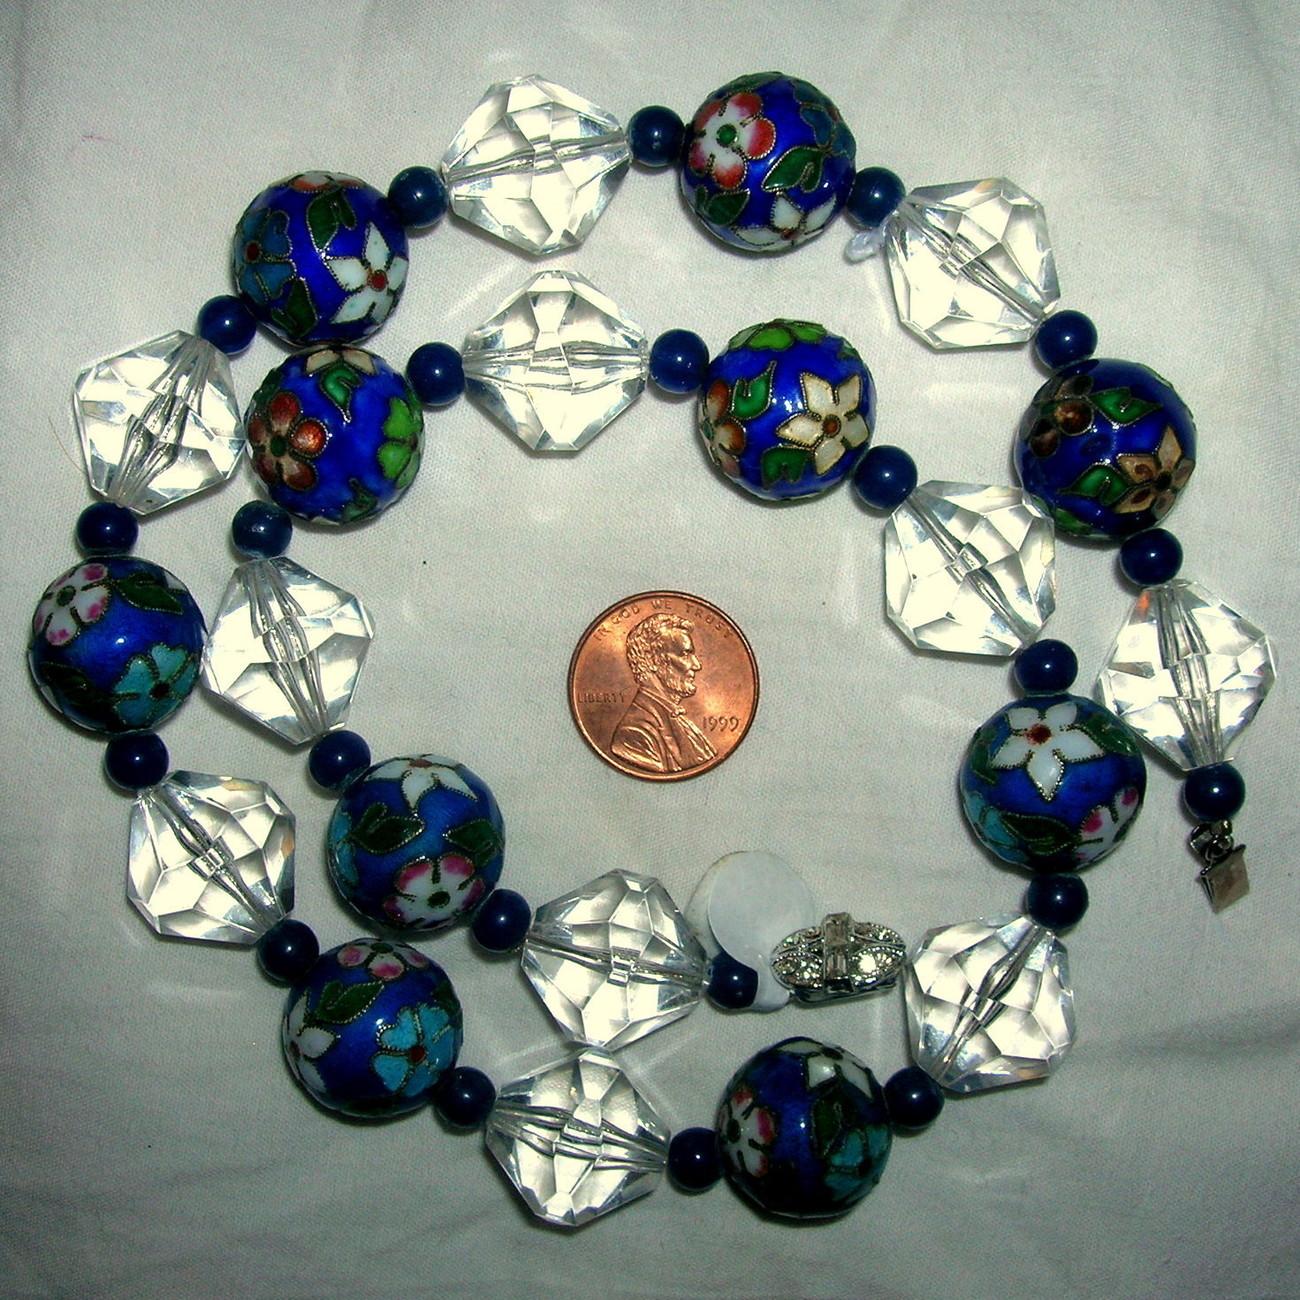 Chunky Vintage Estate Chinese Cloisonne Floral Bead Lucite Necklace 17 mm Beads